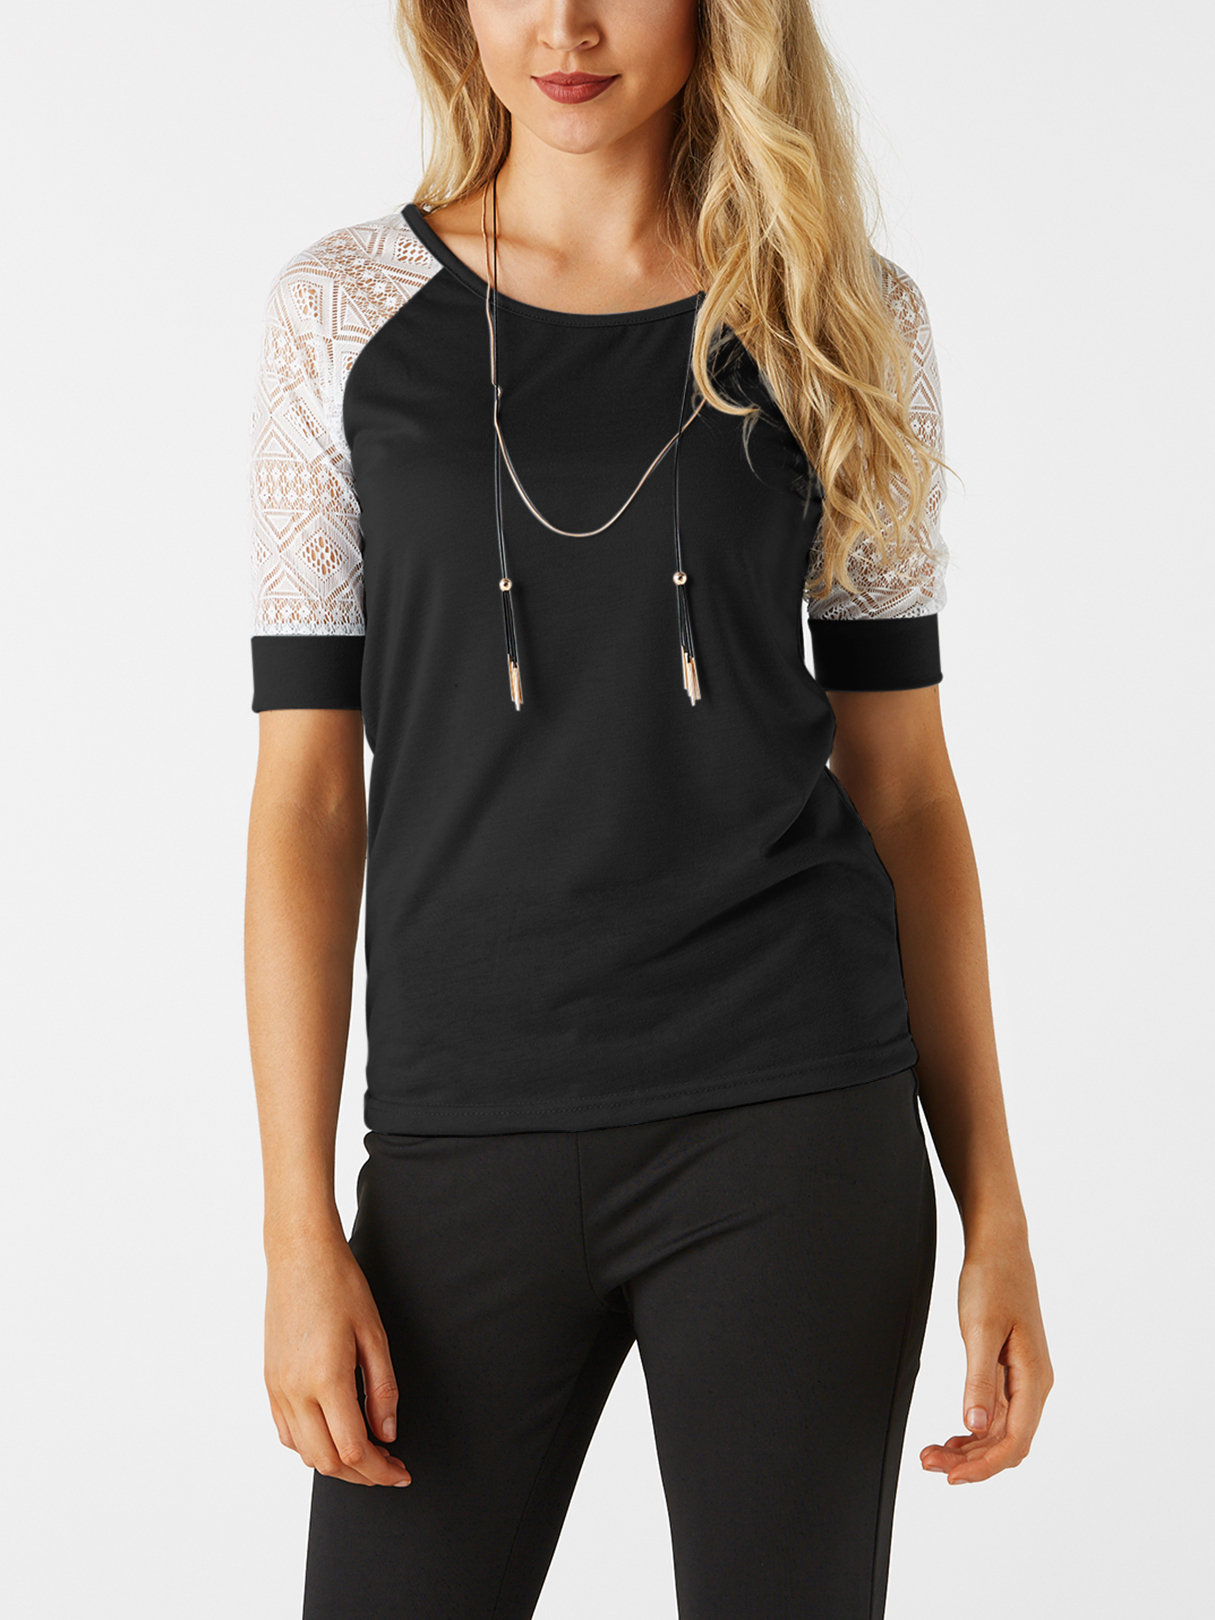 Black Lace Details Round Neck Short Sleeves T-shirts black hollow out round neck short sleeves t shirt